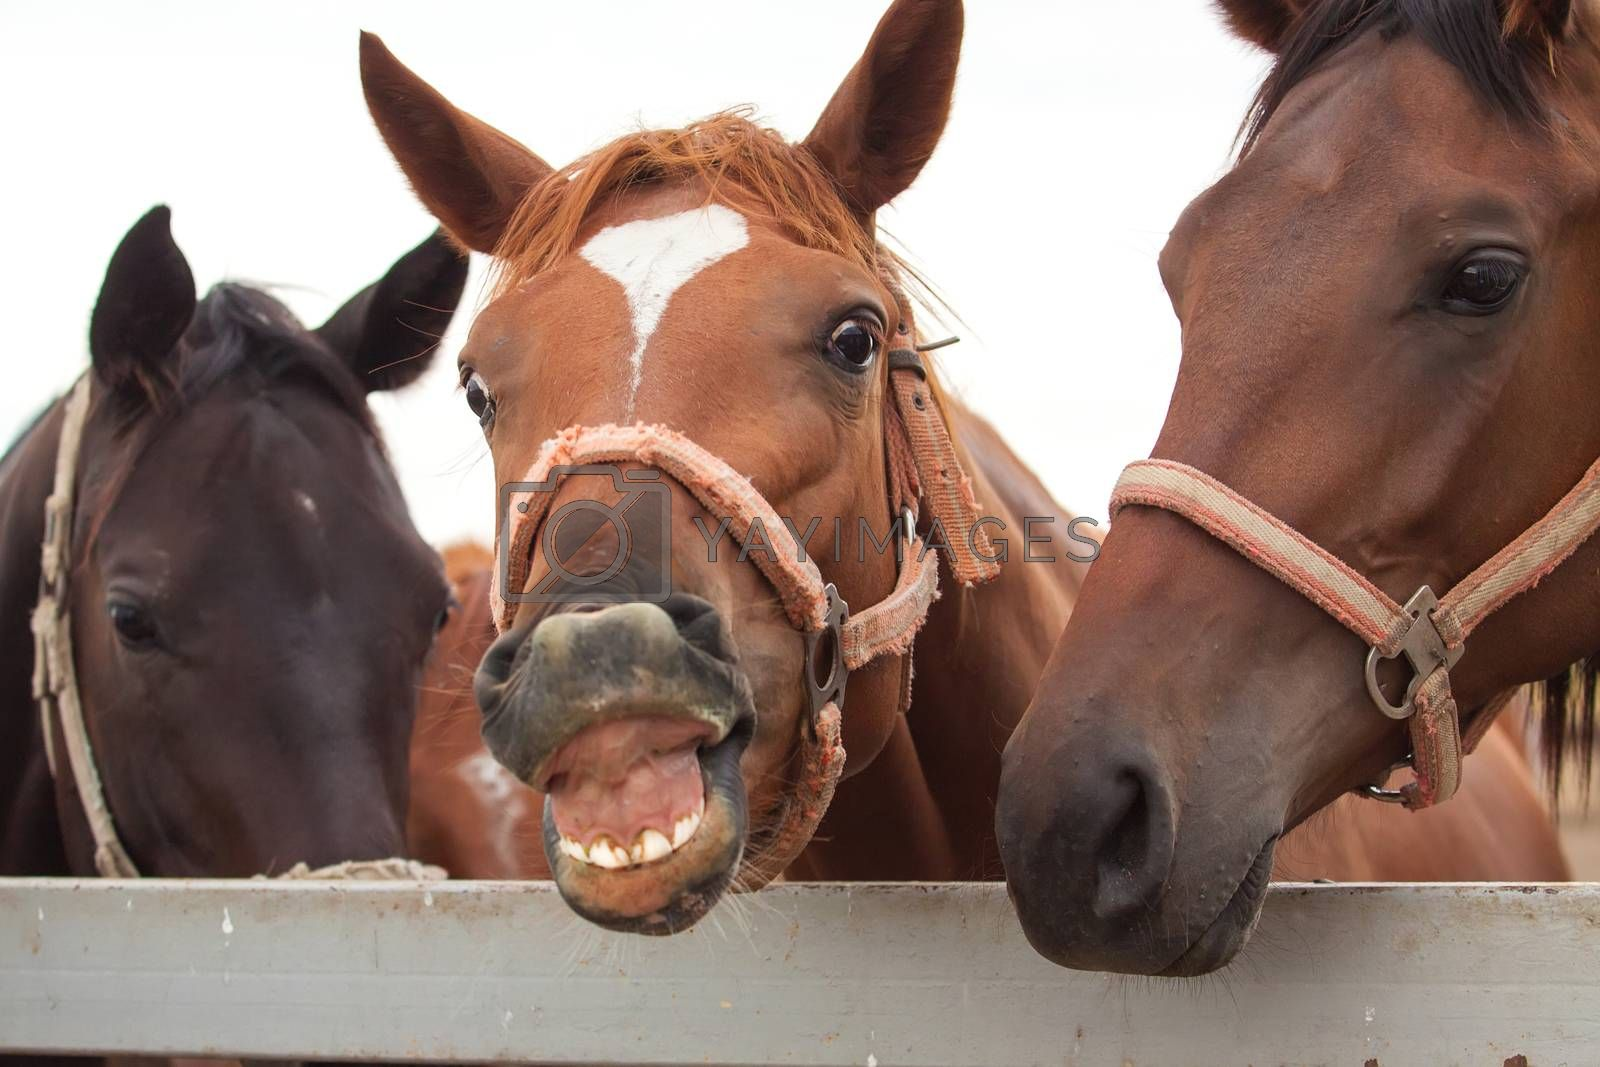 Cheerful horse smiling and showing his teeth